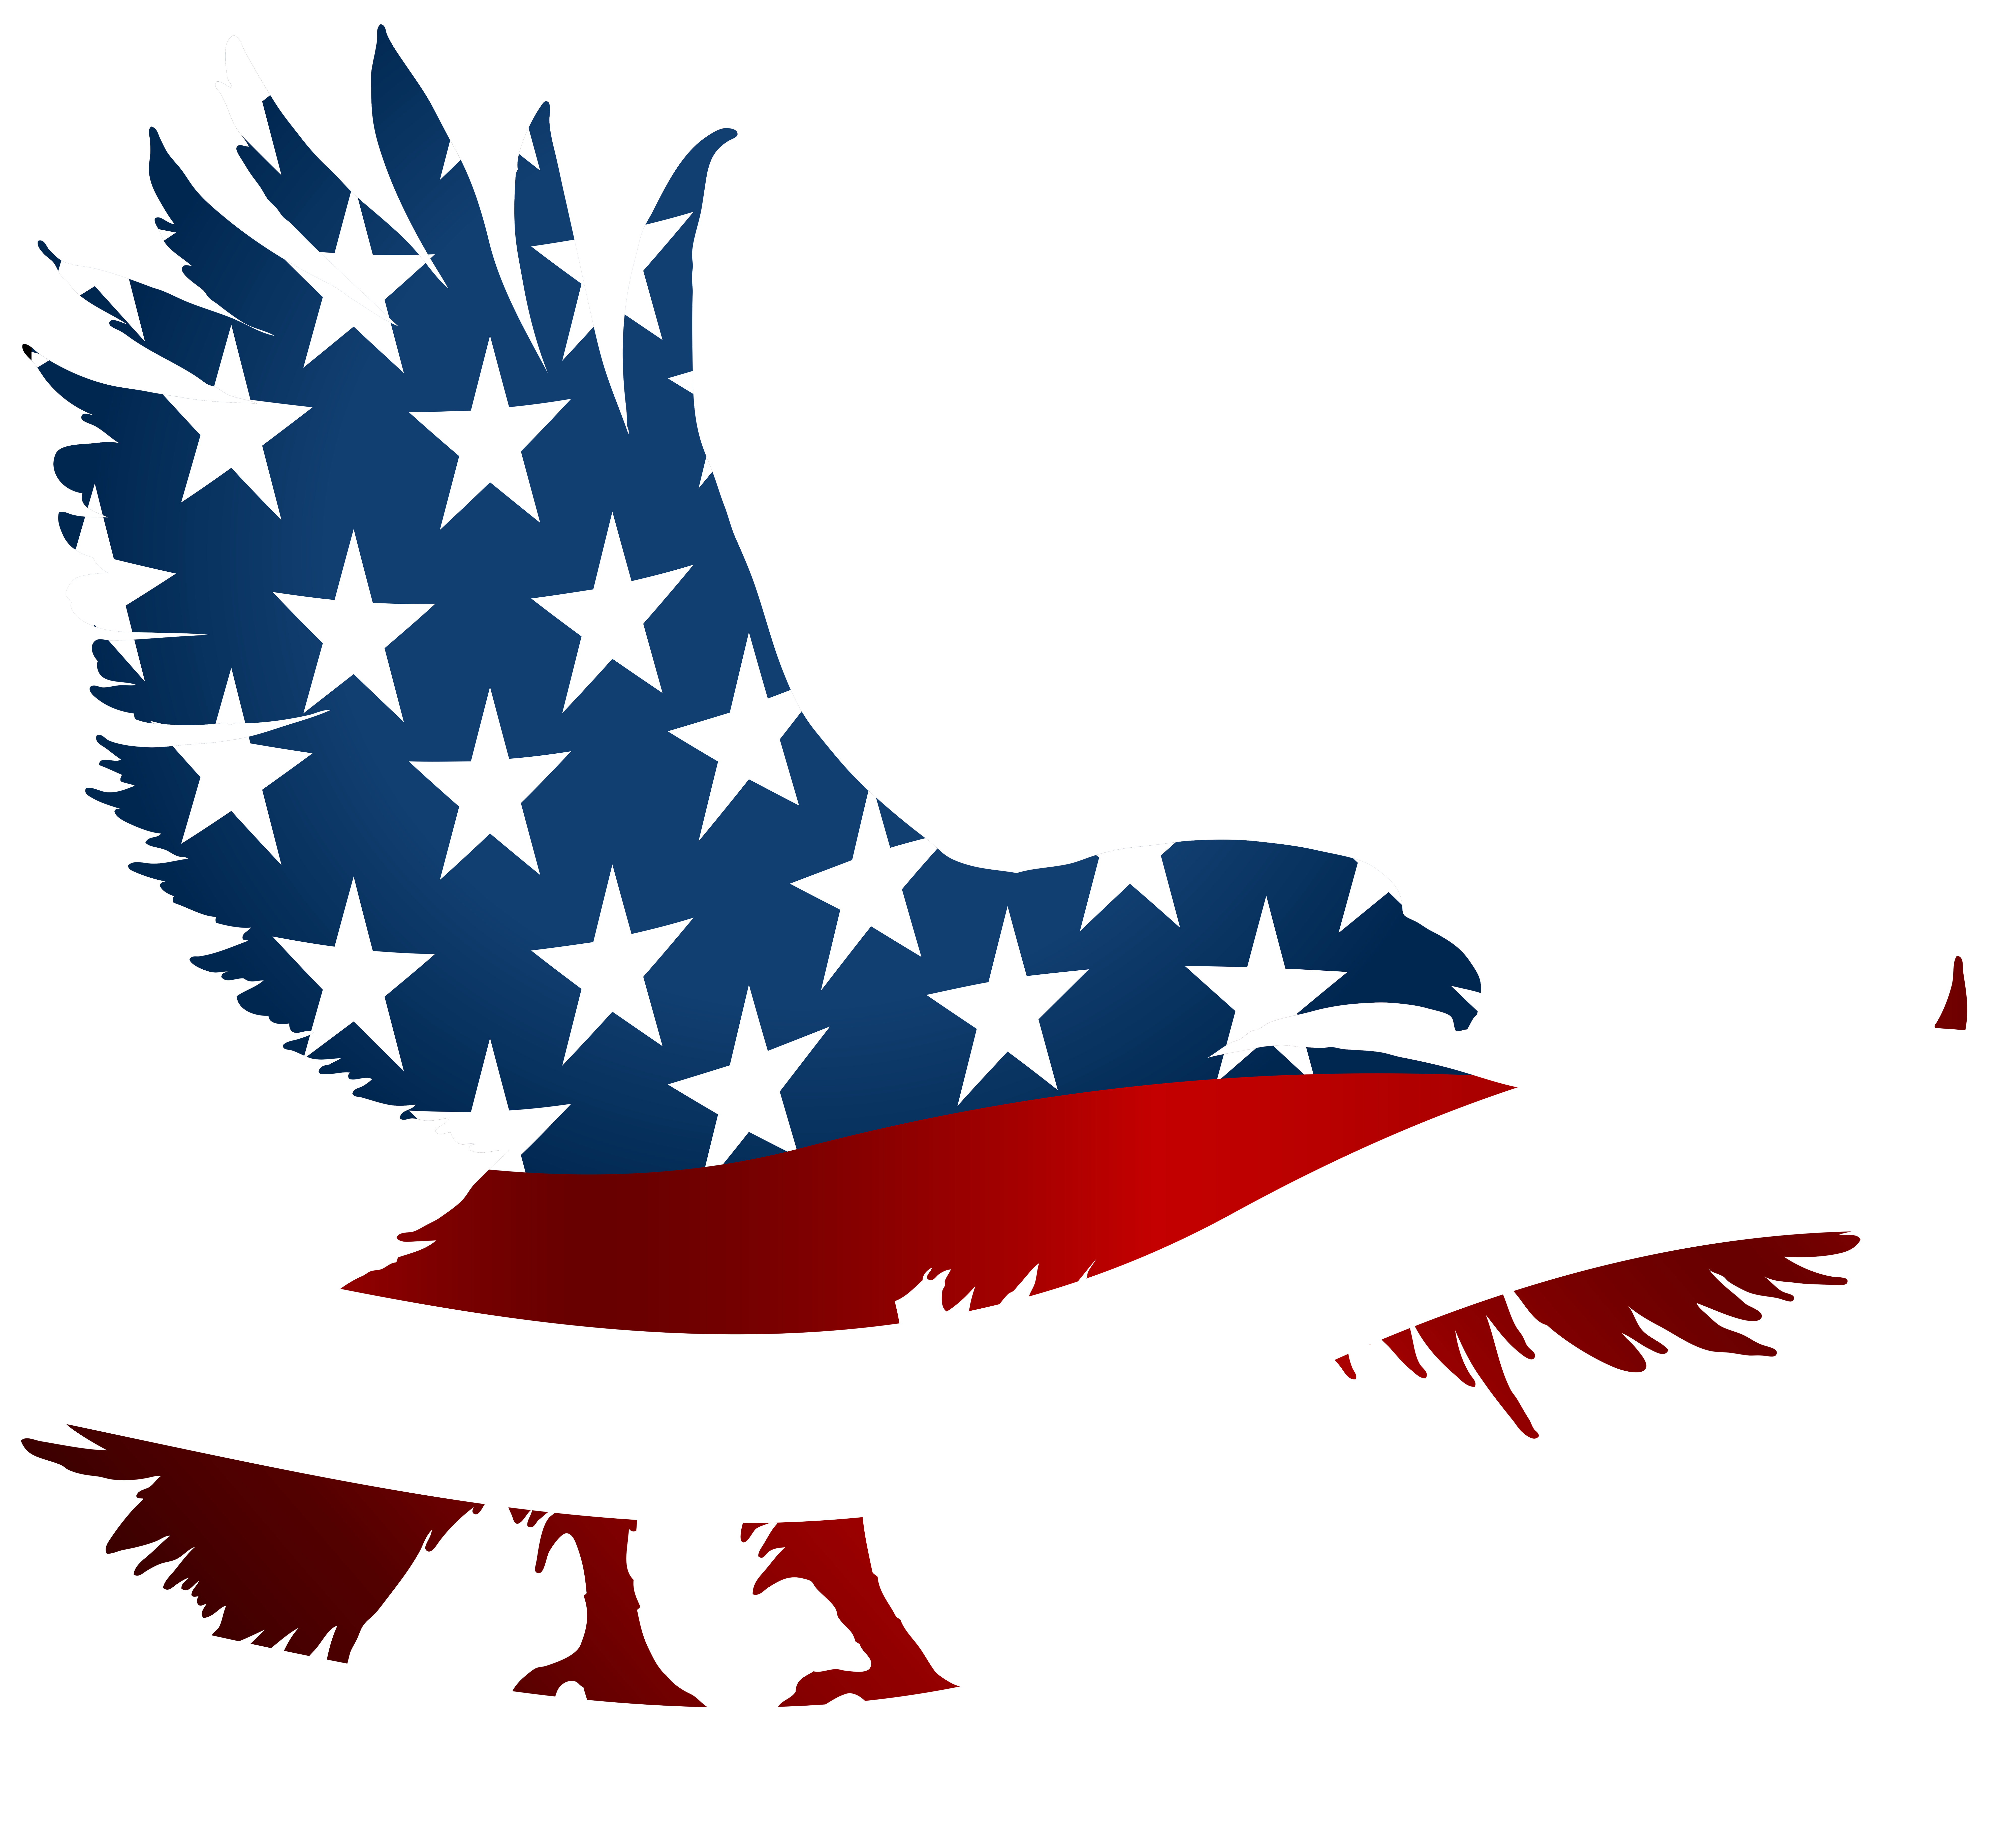 svg royalty free stock Eagle flag transparent png. American clipart